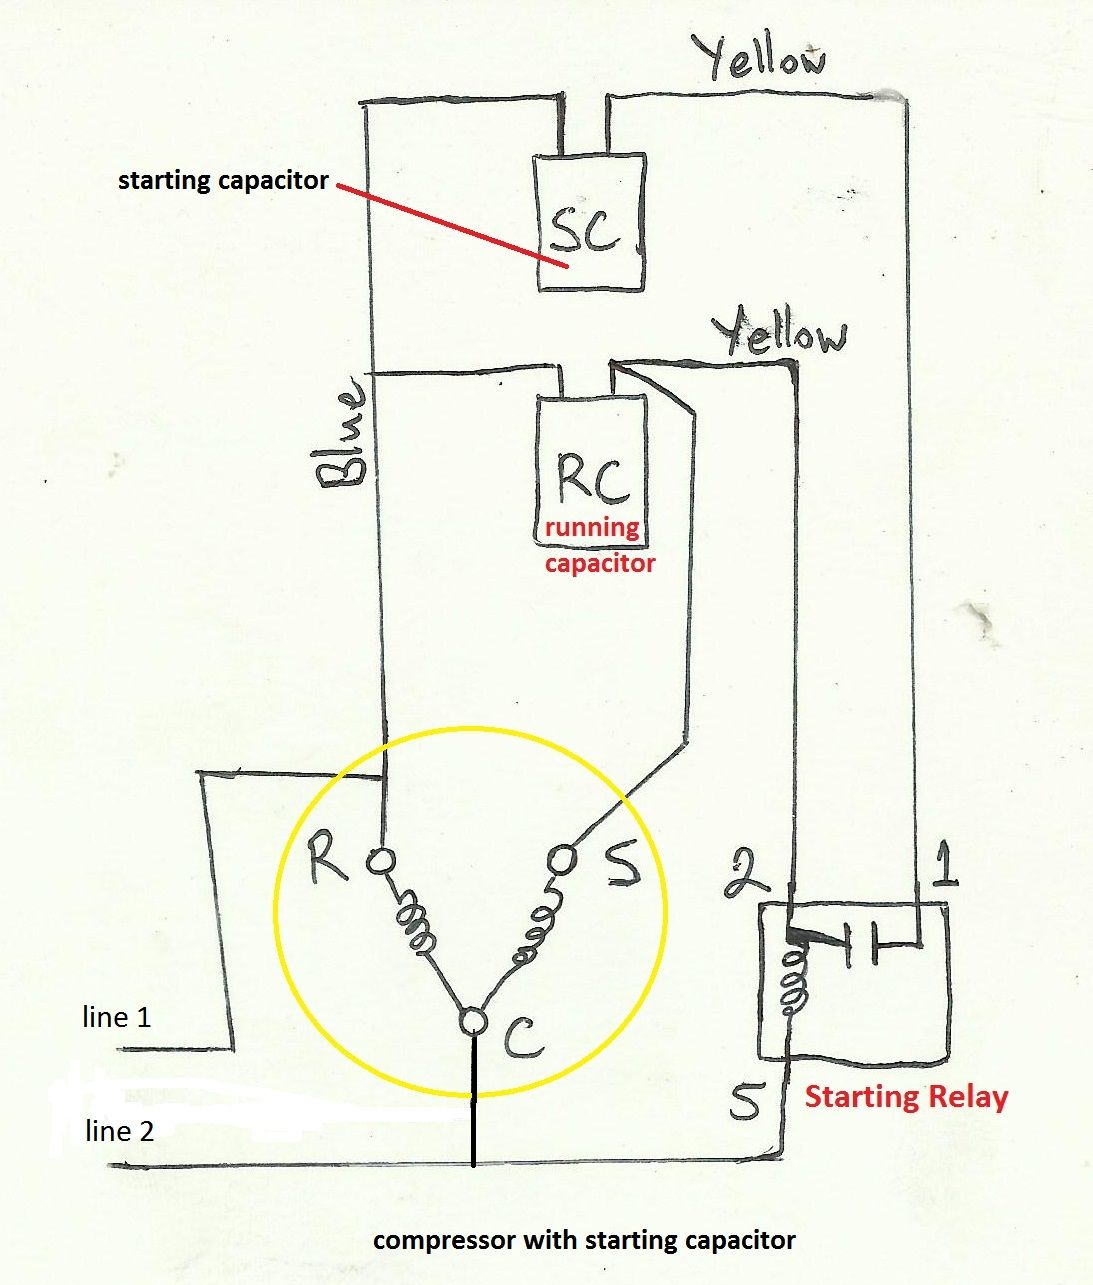 Groovy Potential Relay Start Capacitor Wiring Diagram Basic Electronics Wiring 101 Akebretraxxcnl